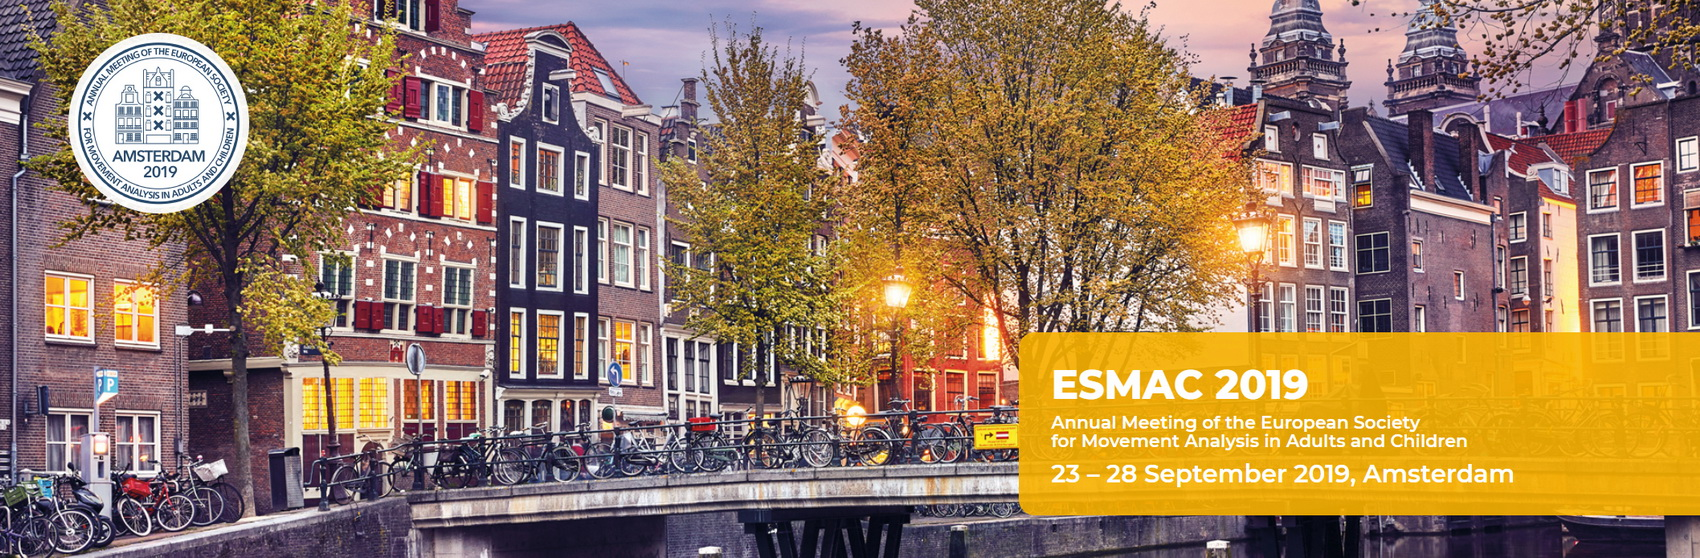 Logo for the 2019 ESMAC meeting overlaid on a classic Amsterdam scene, bikes lined up on a bridge over a canal with historic buildings in the background.